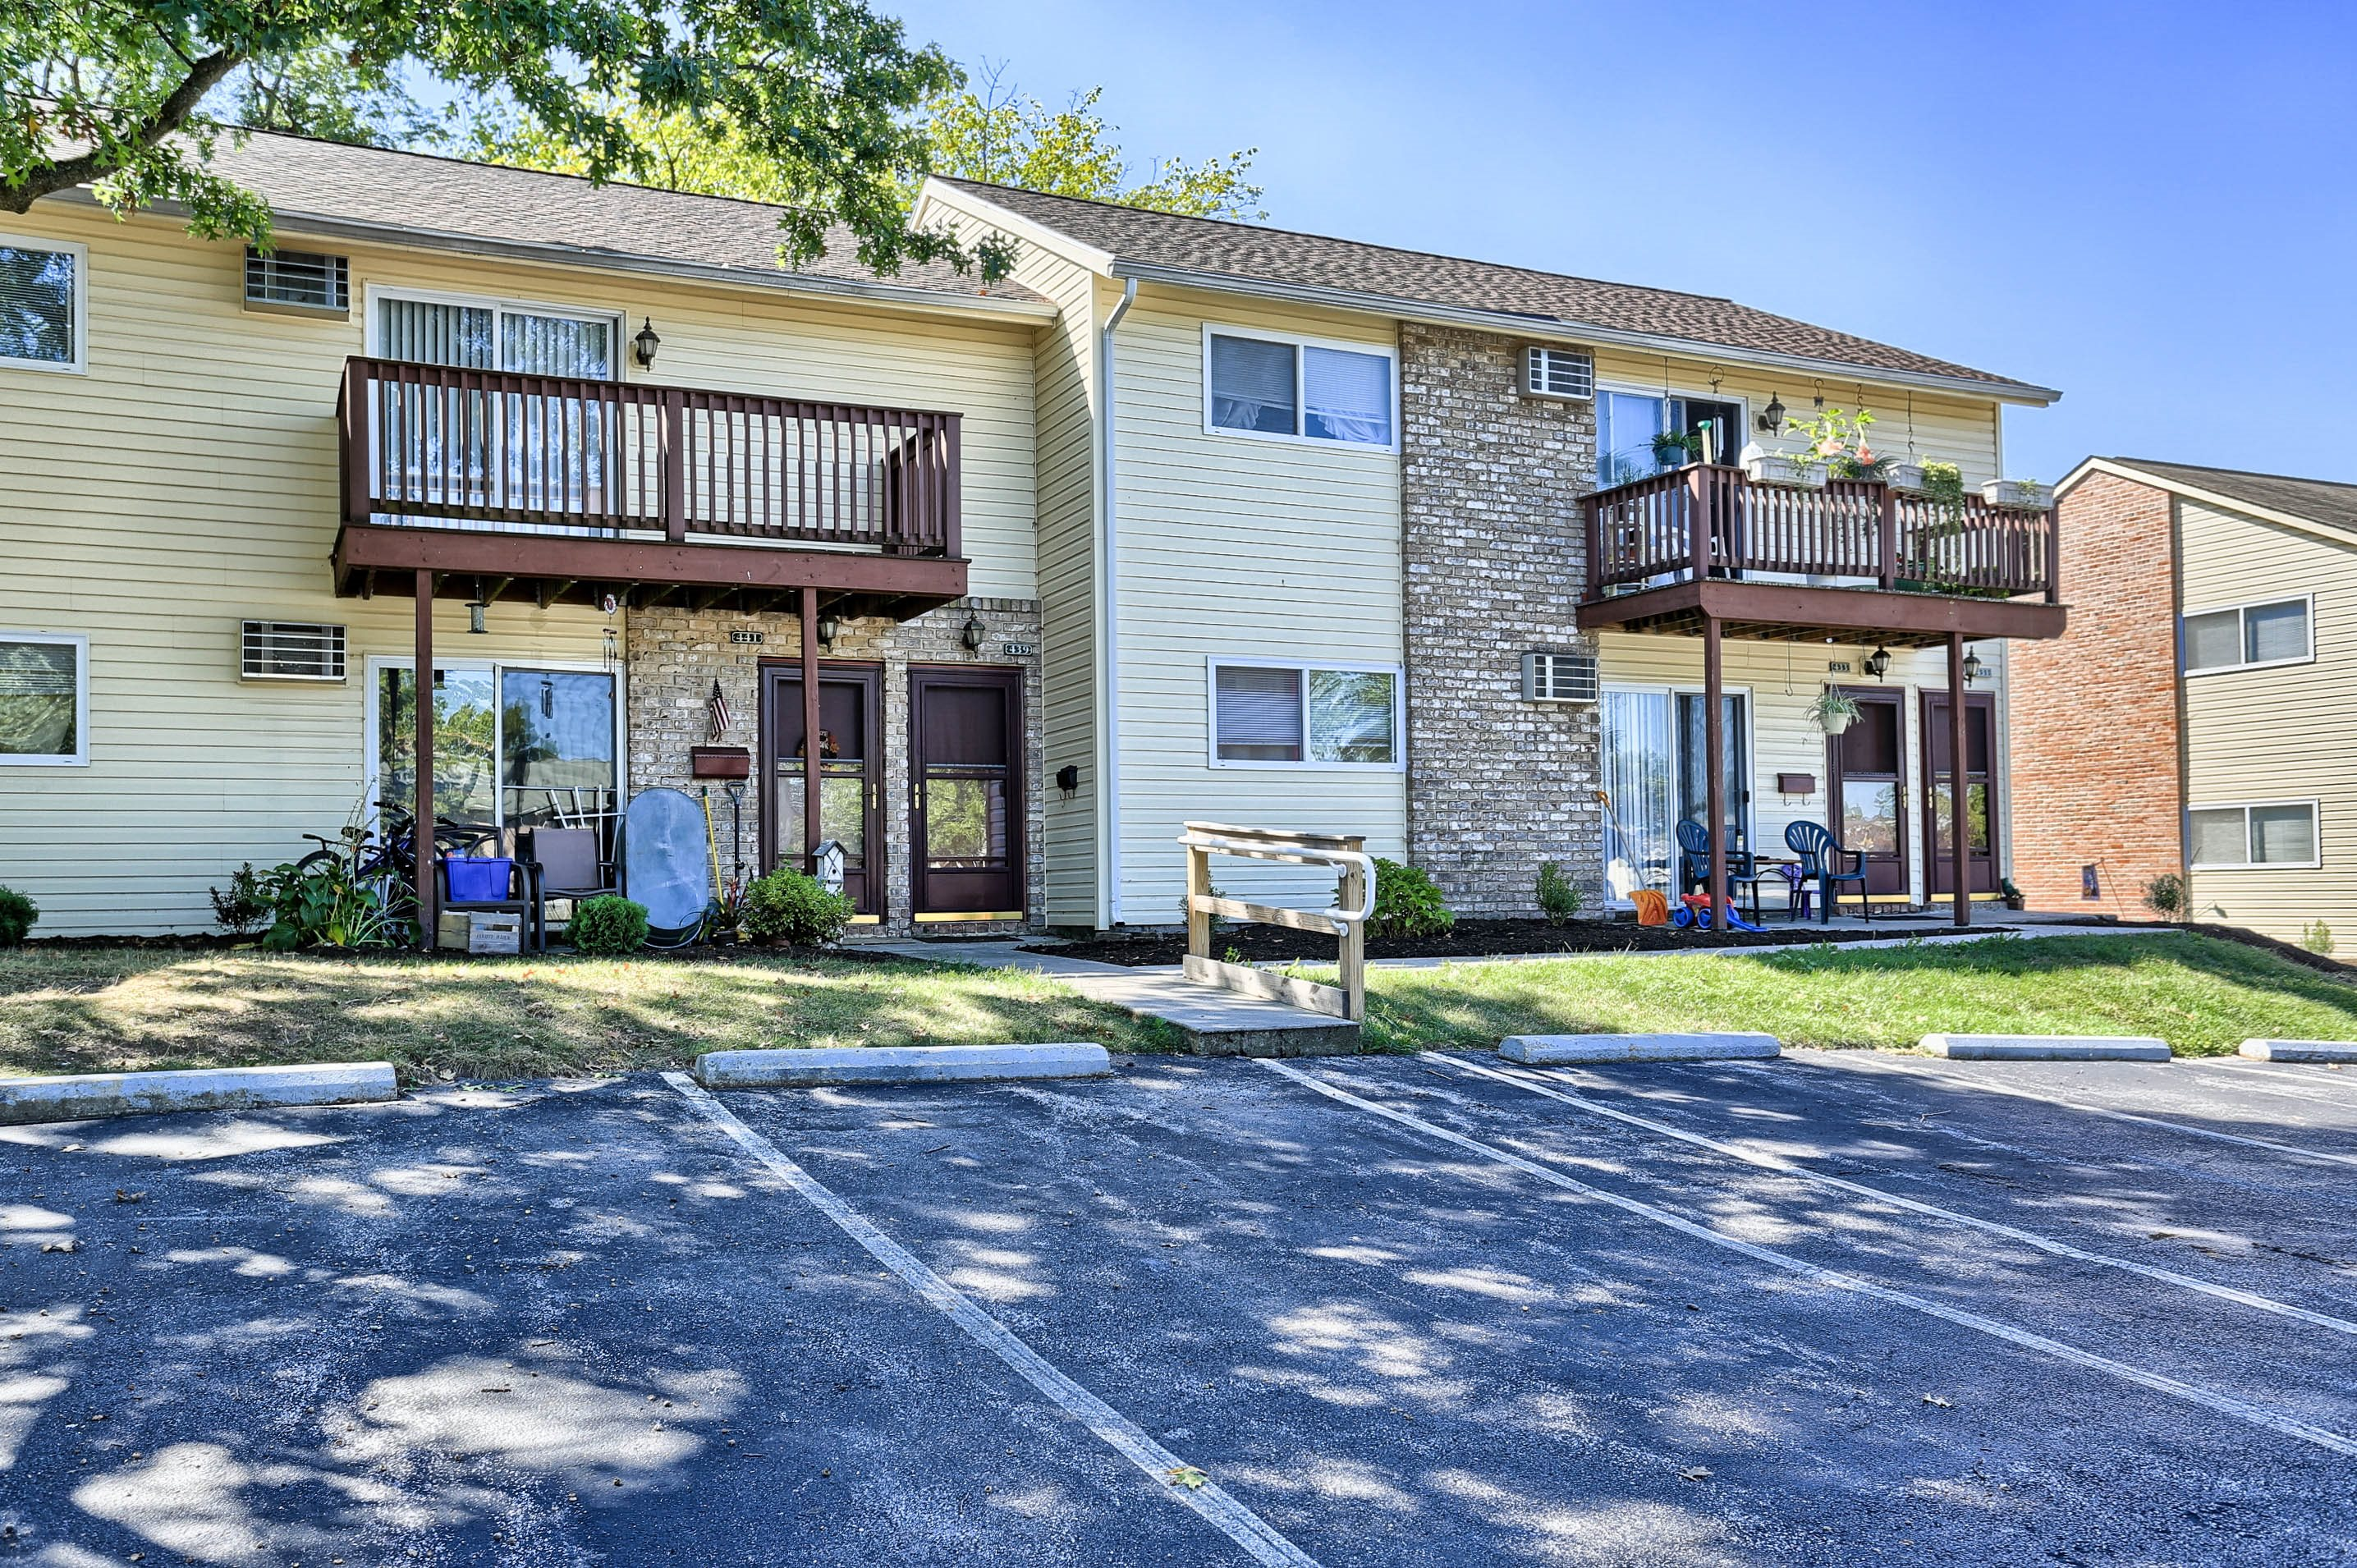 Apartment Complexes In Gettysburg Pa